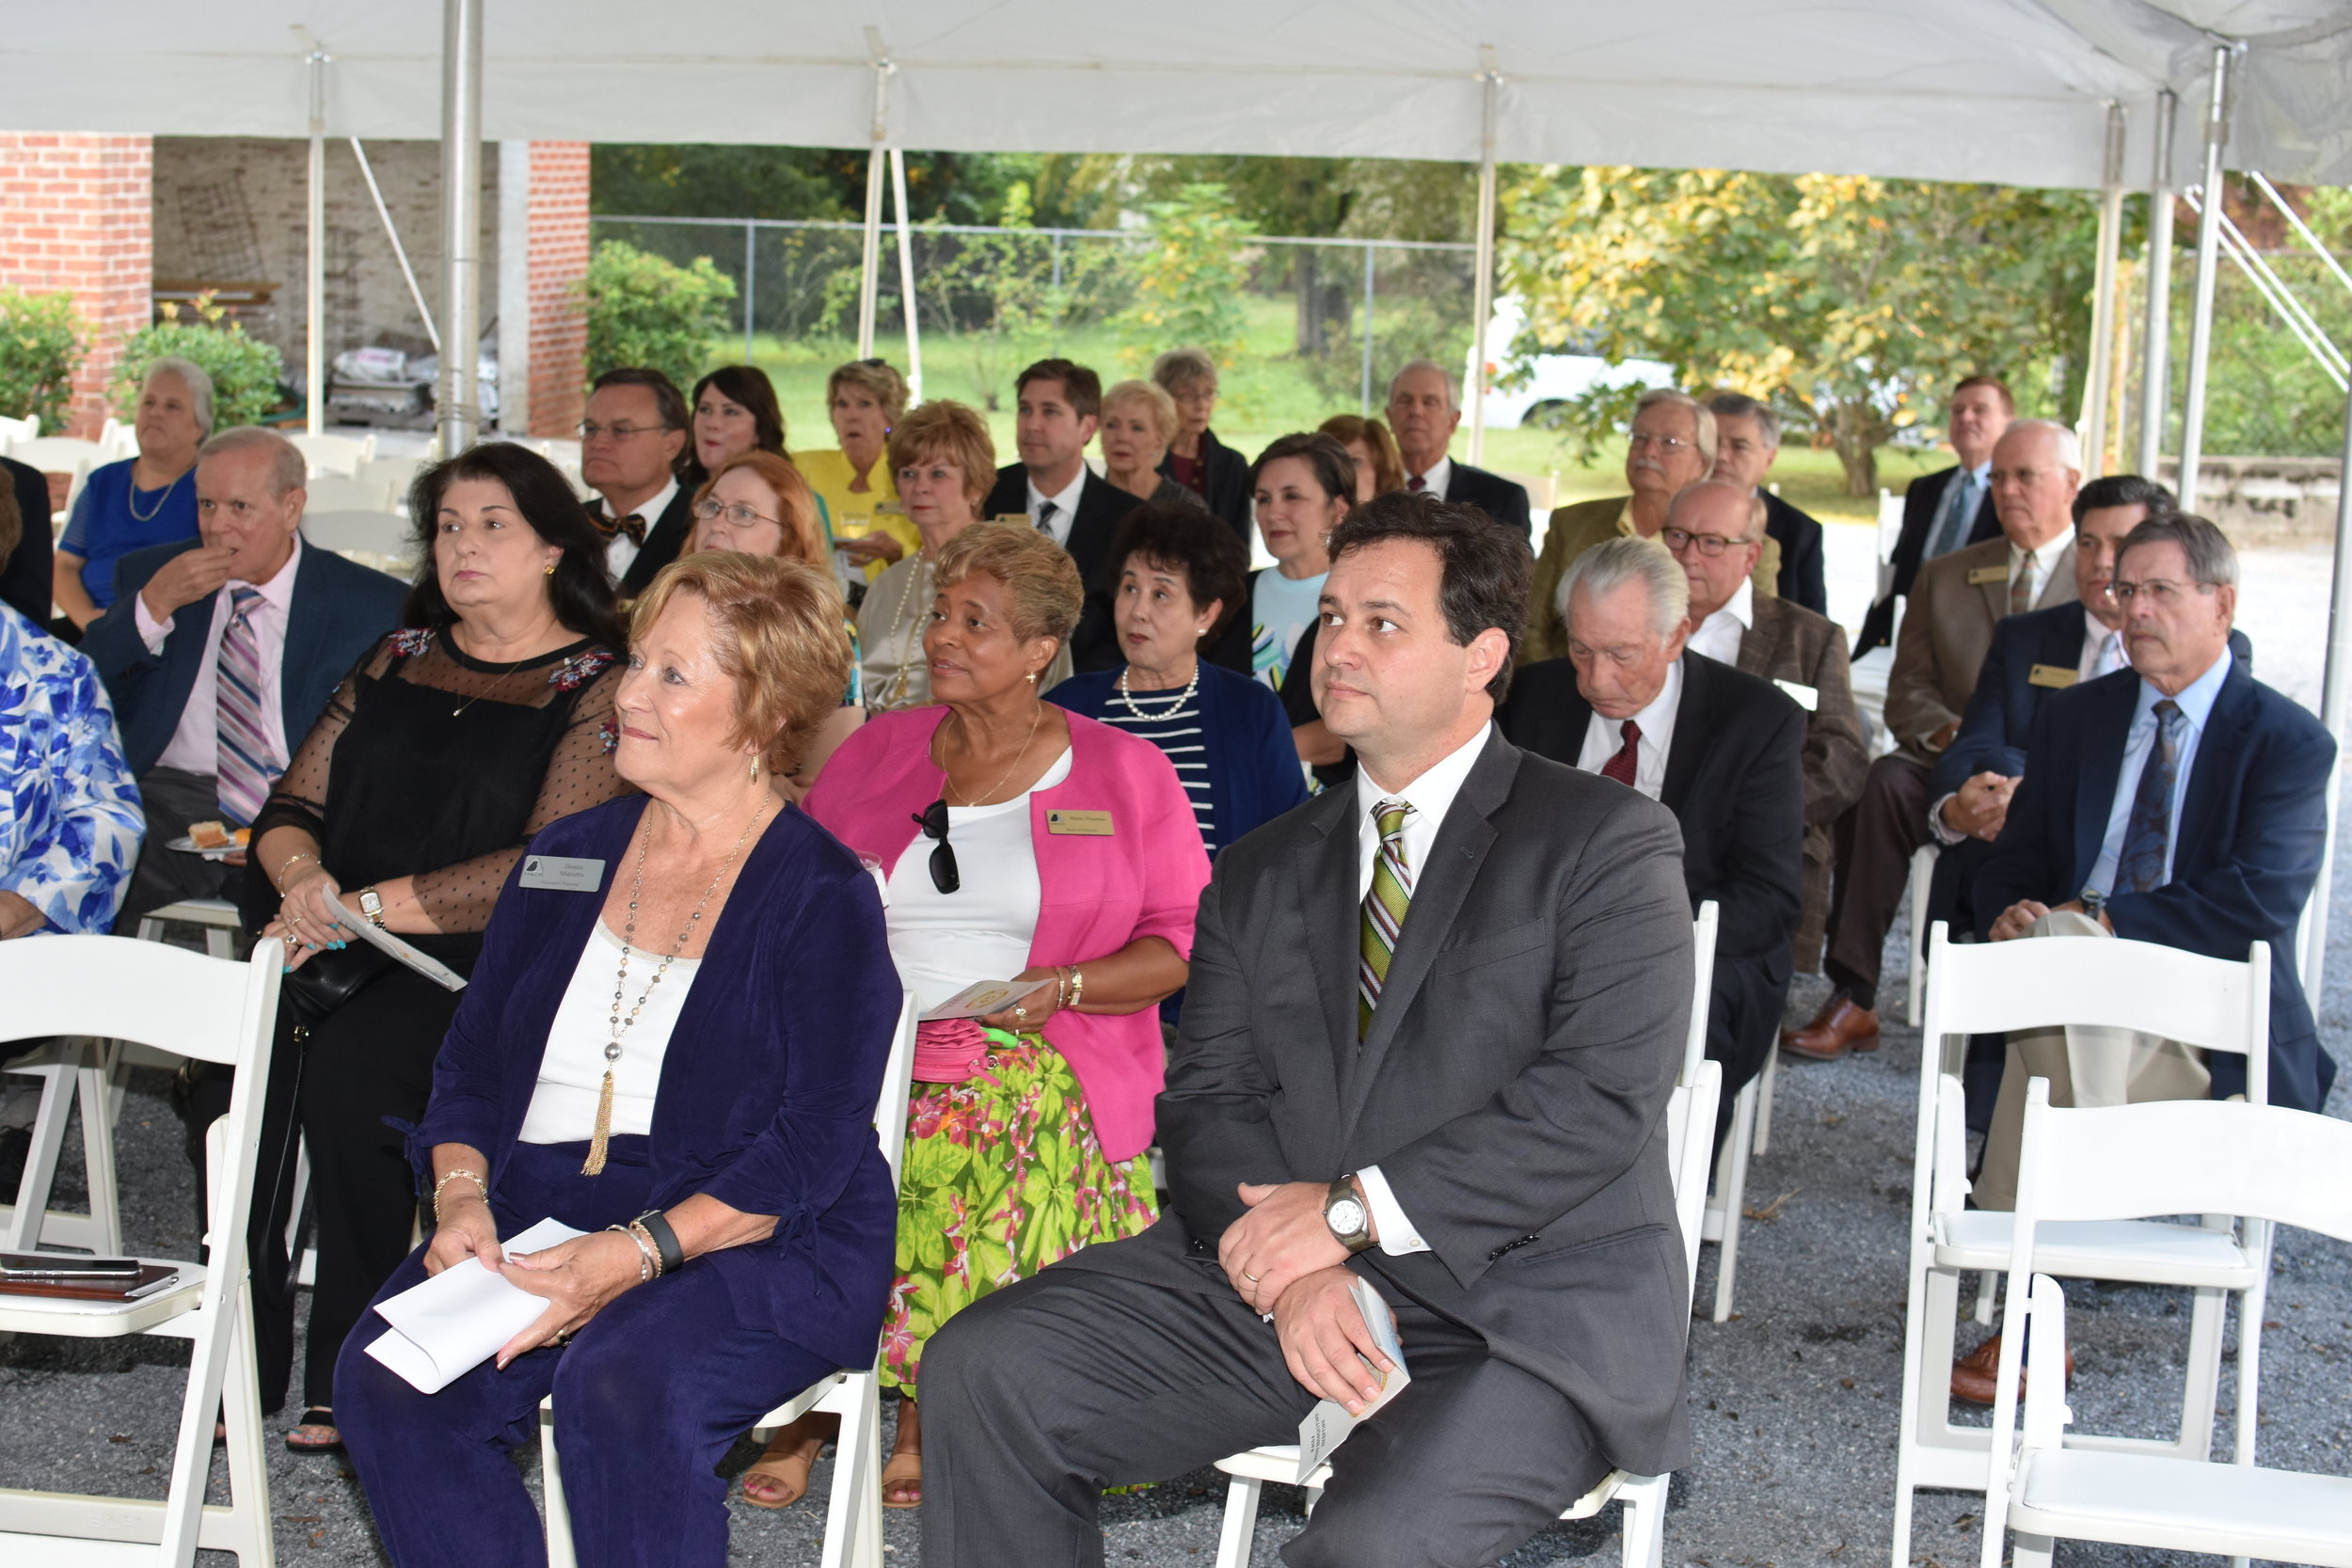 1-Guests learn of updates and vision for MACOA.JPG